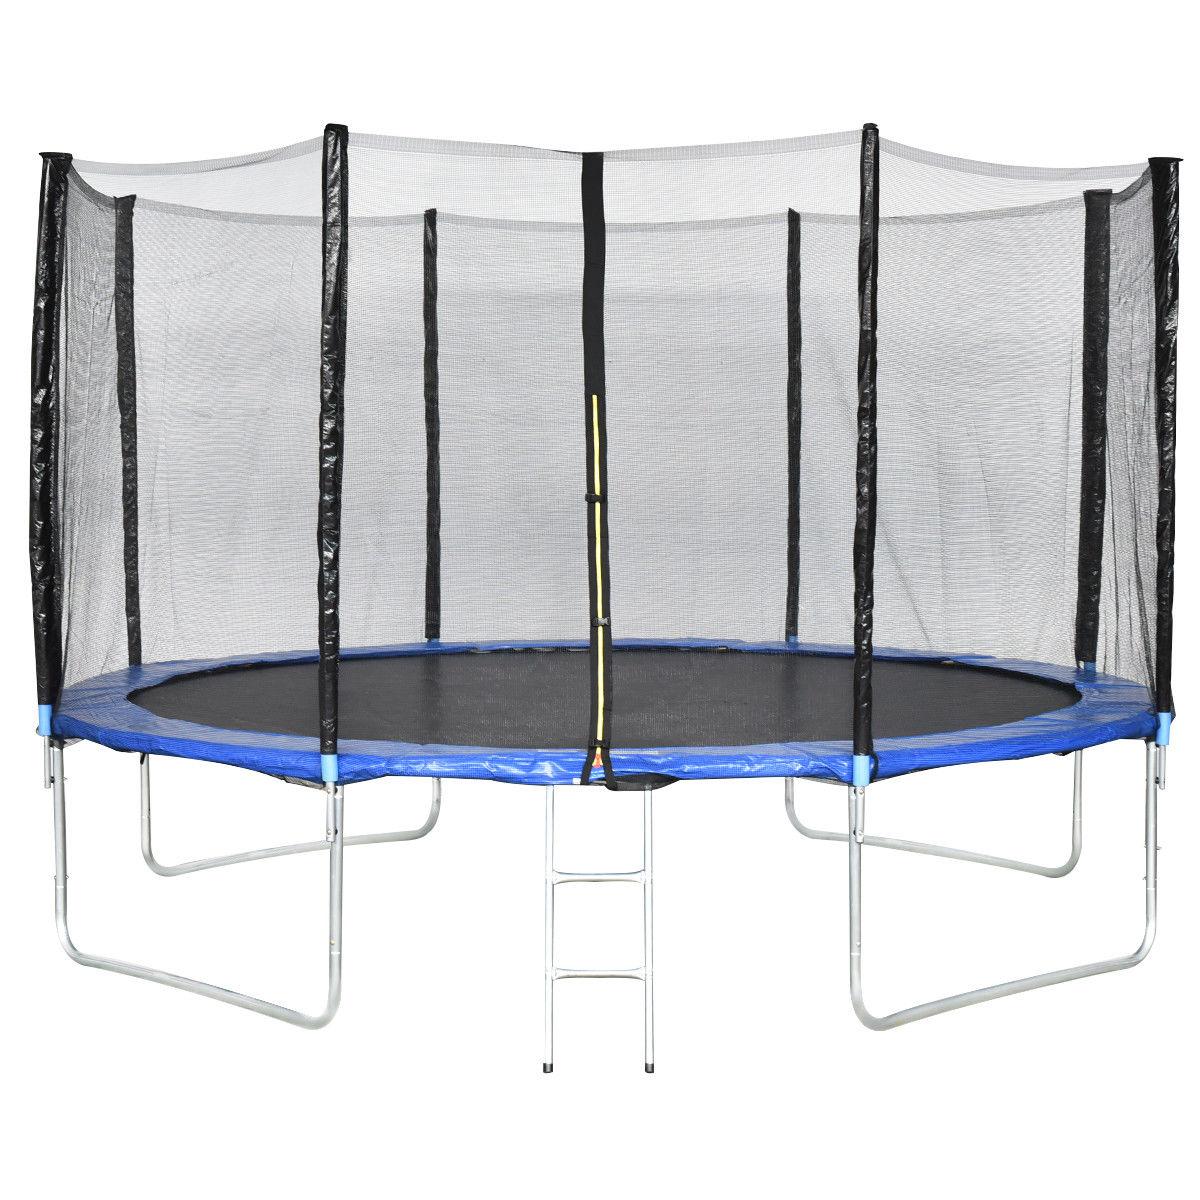 Gymax 13 FT Trampoline Combo Bounce Jump Safety Enclosure Net W/Spring Pad Ladder